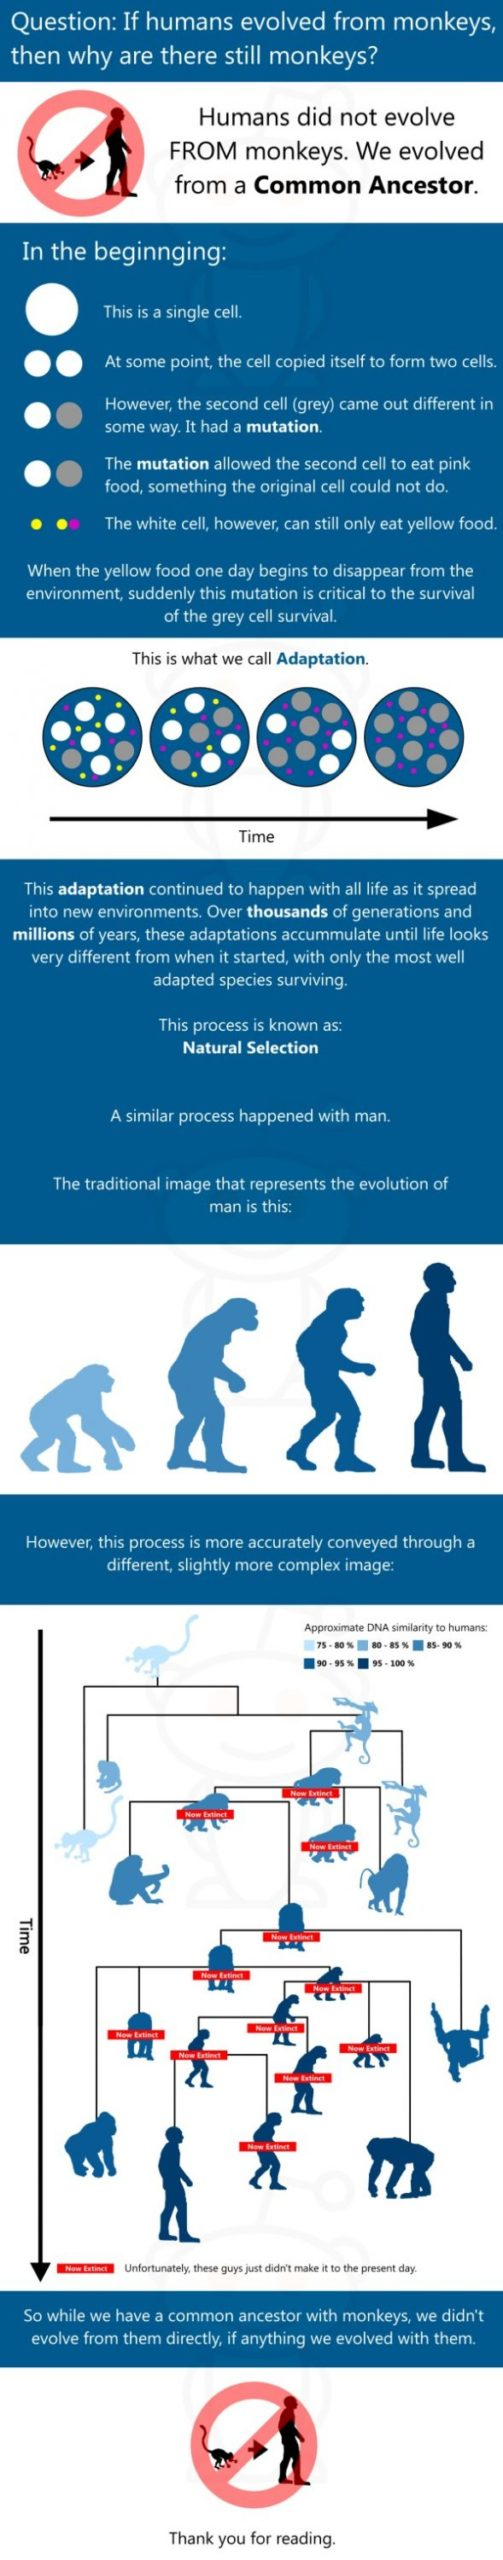 A Common Ancestor - If humans evolved from monkeys, why are there still monkeys?